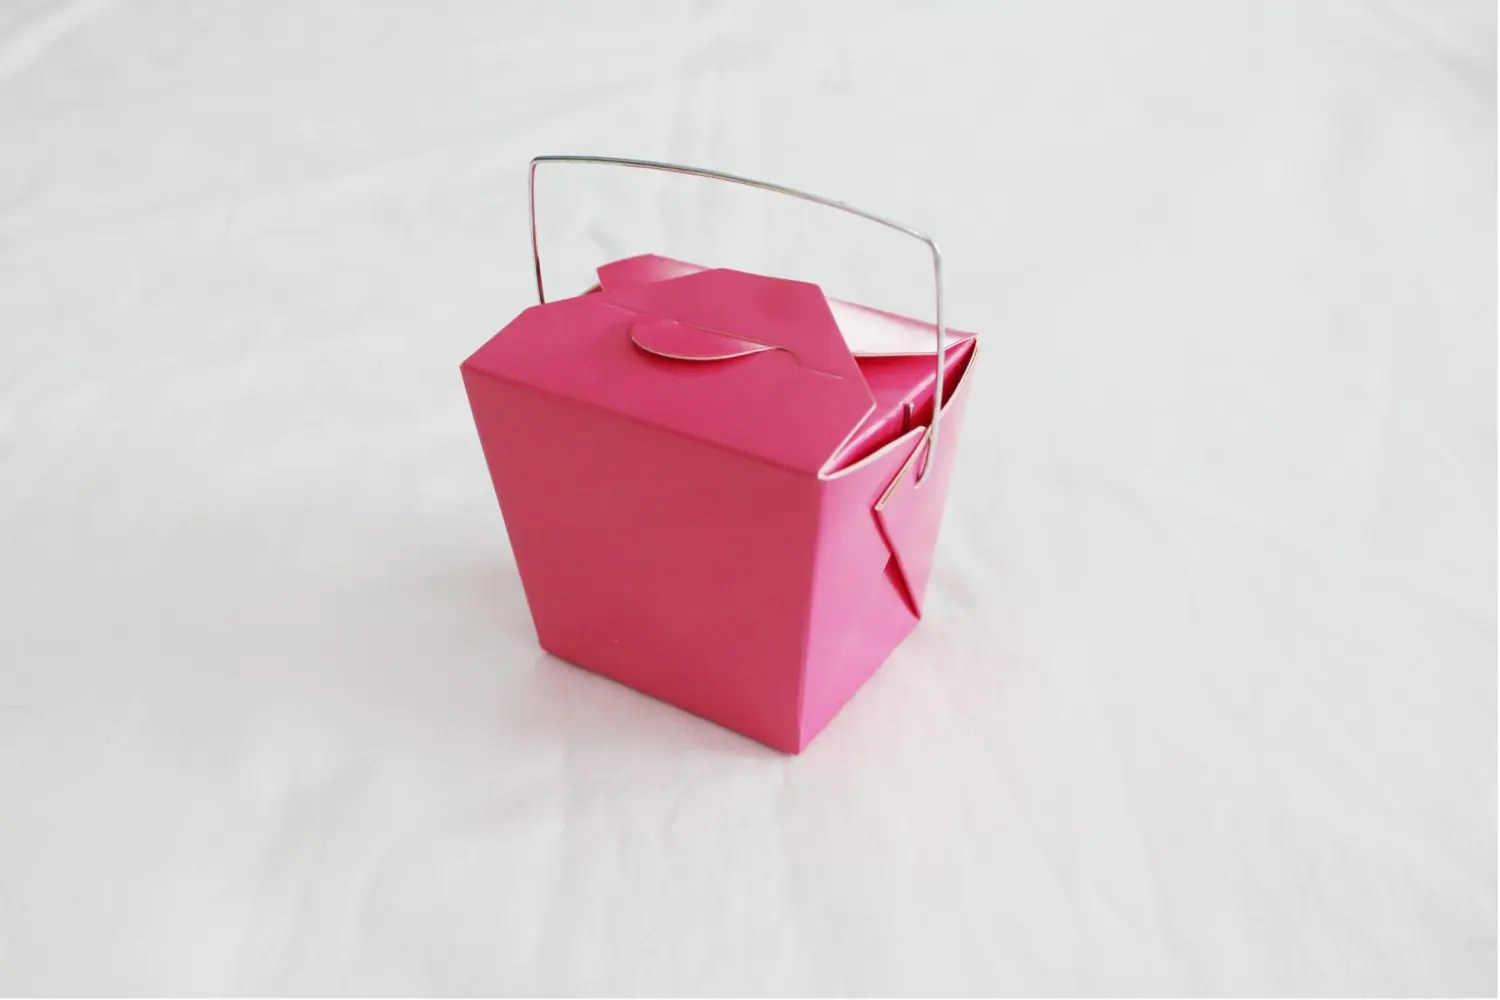 25 Small Hot Pink Chinese Take Out Boxes For Party Favors Or